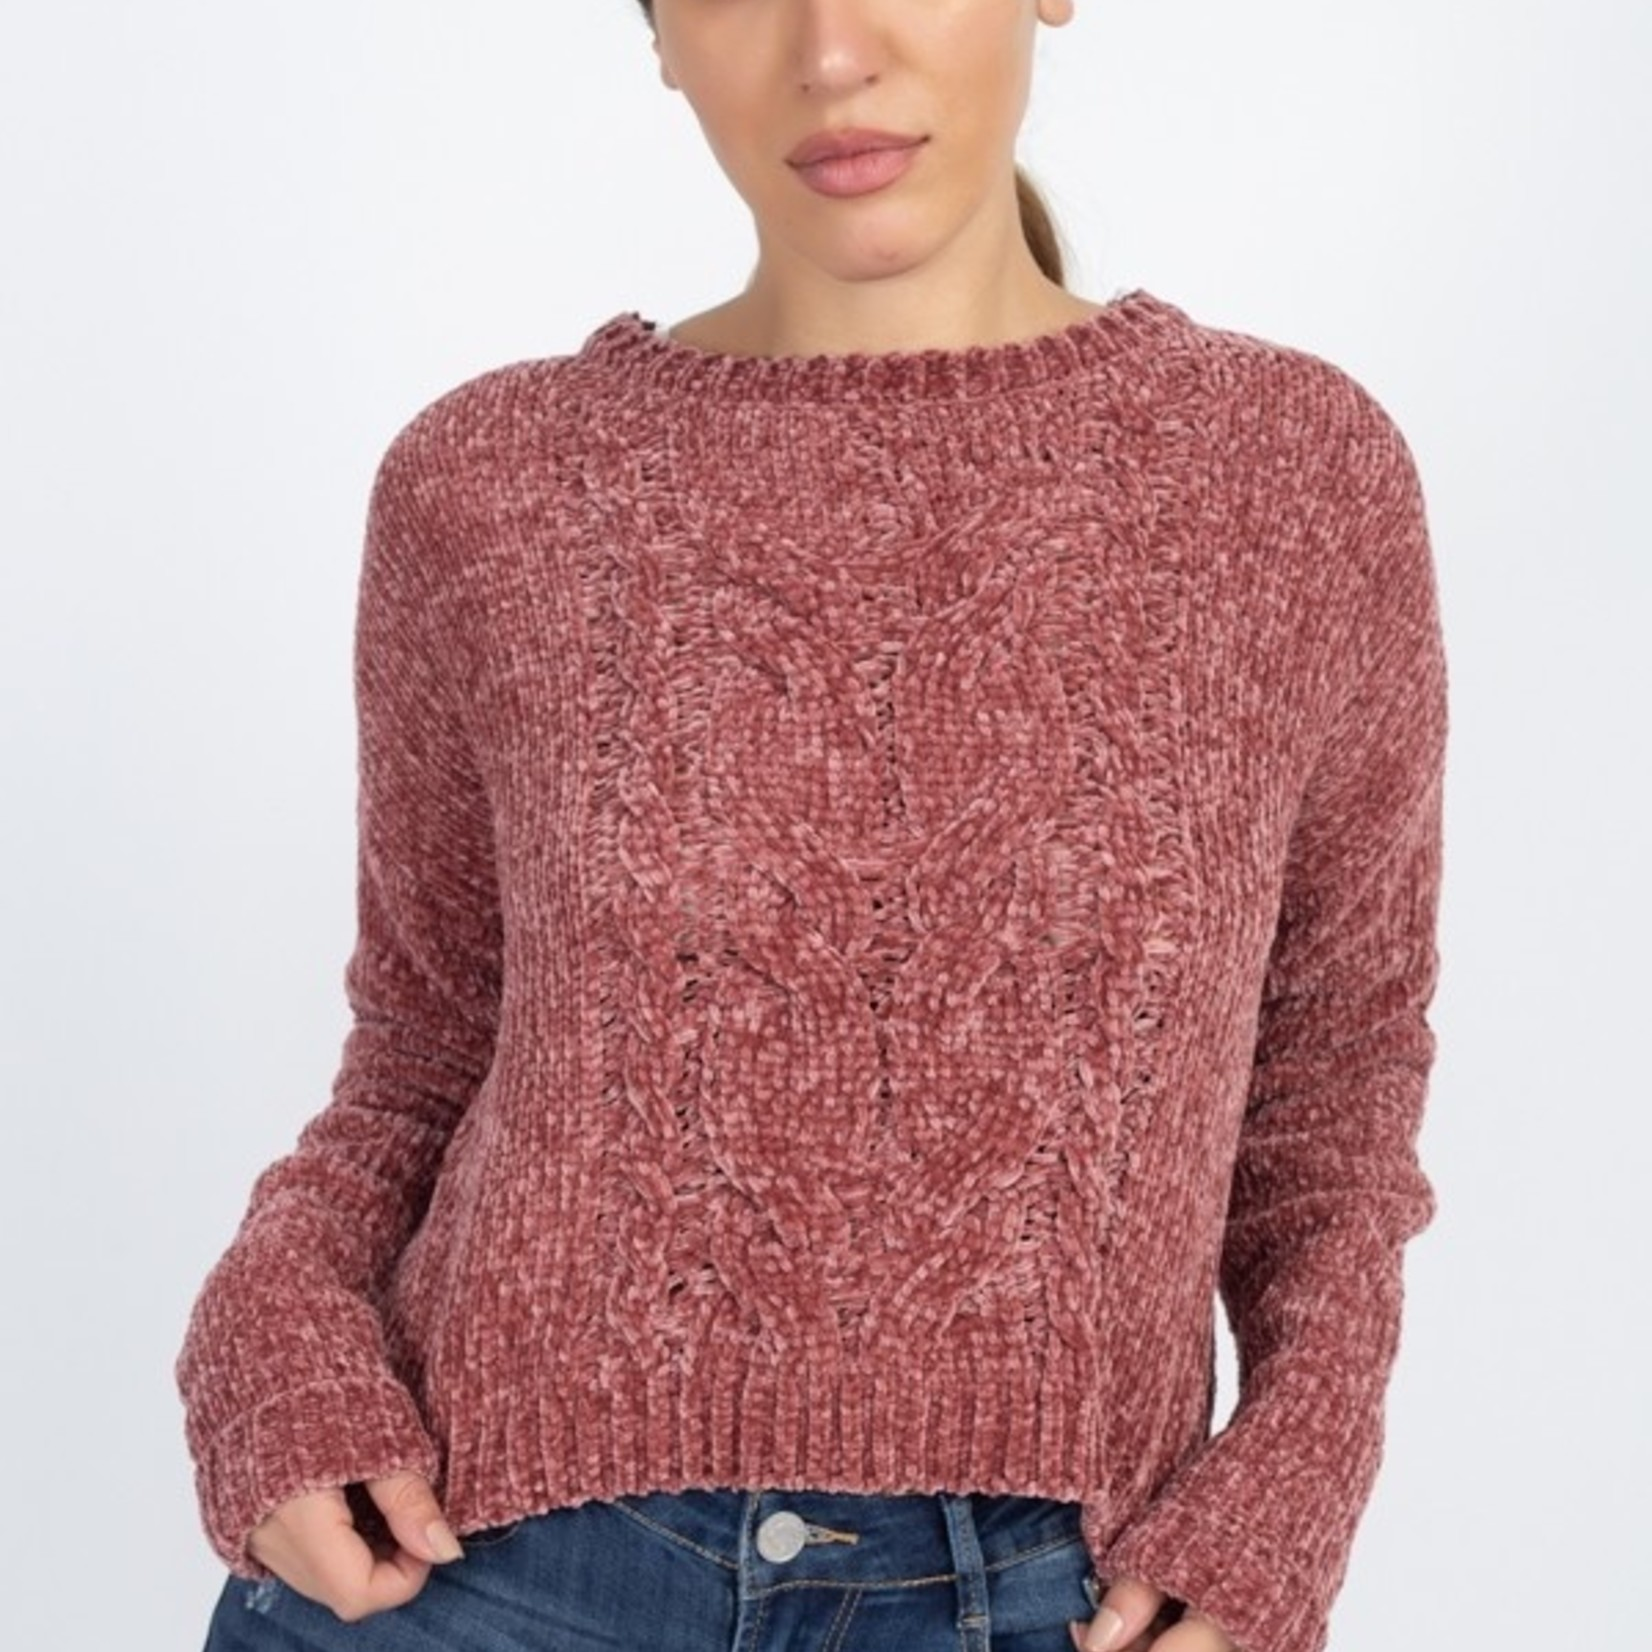 Isabella cable knit sweater